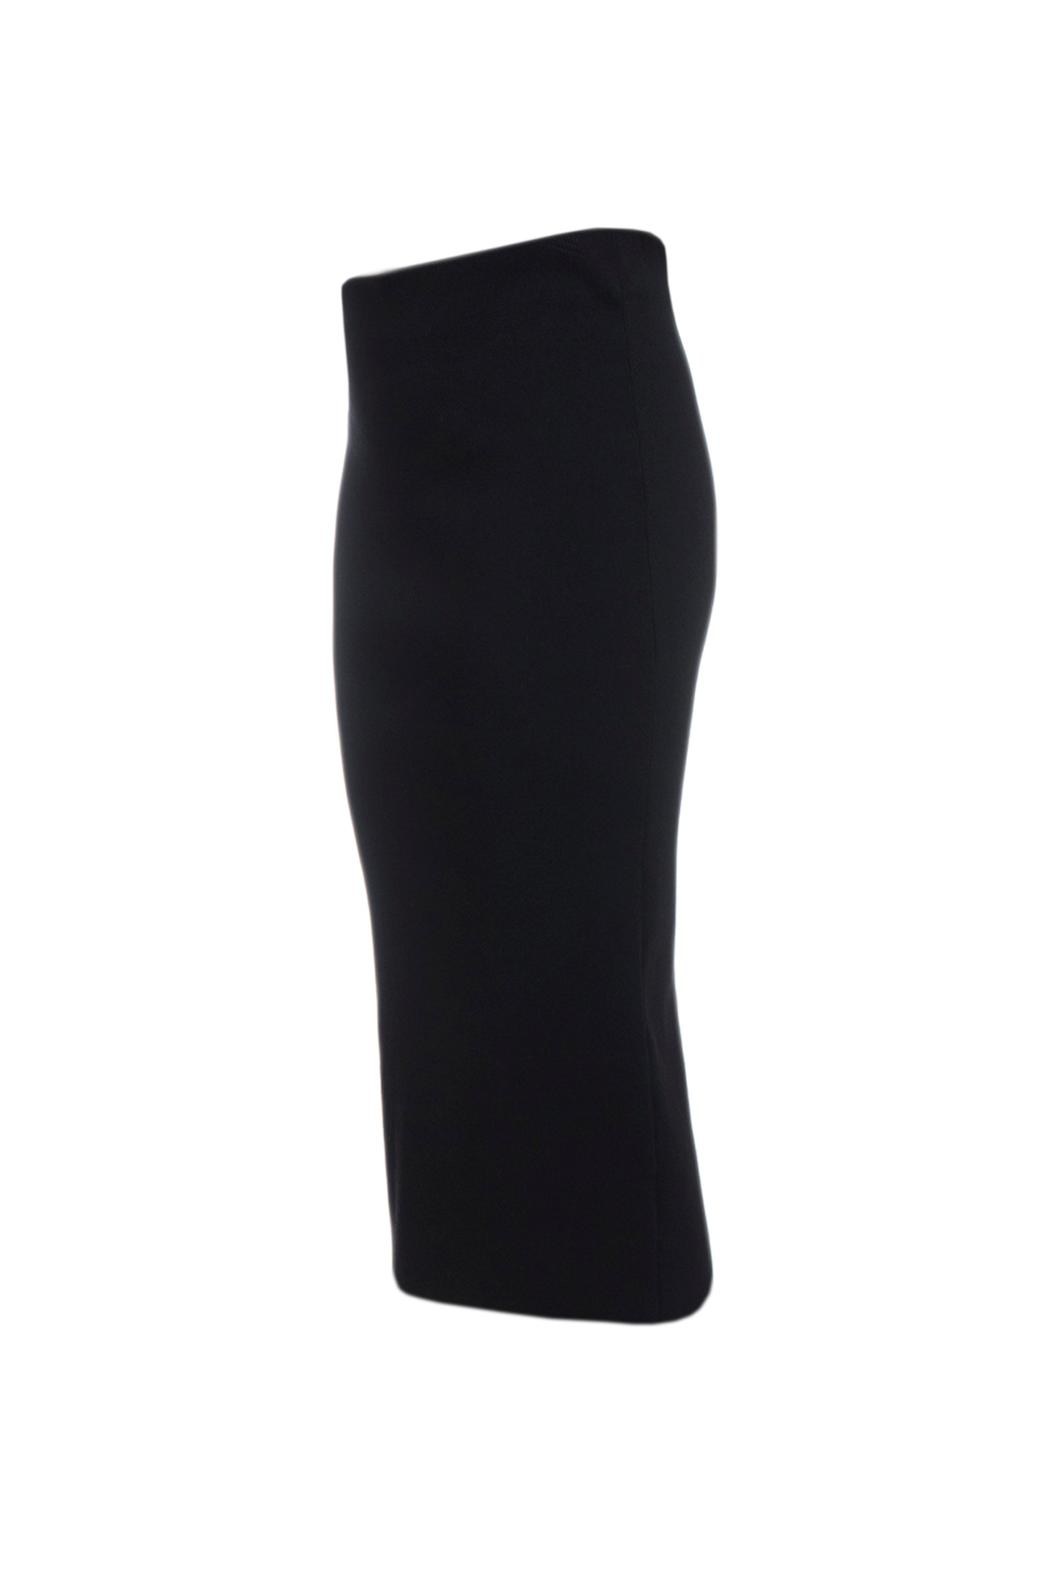 Charlie May Knit Pencil Skirt - Front Full Image